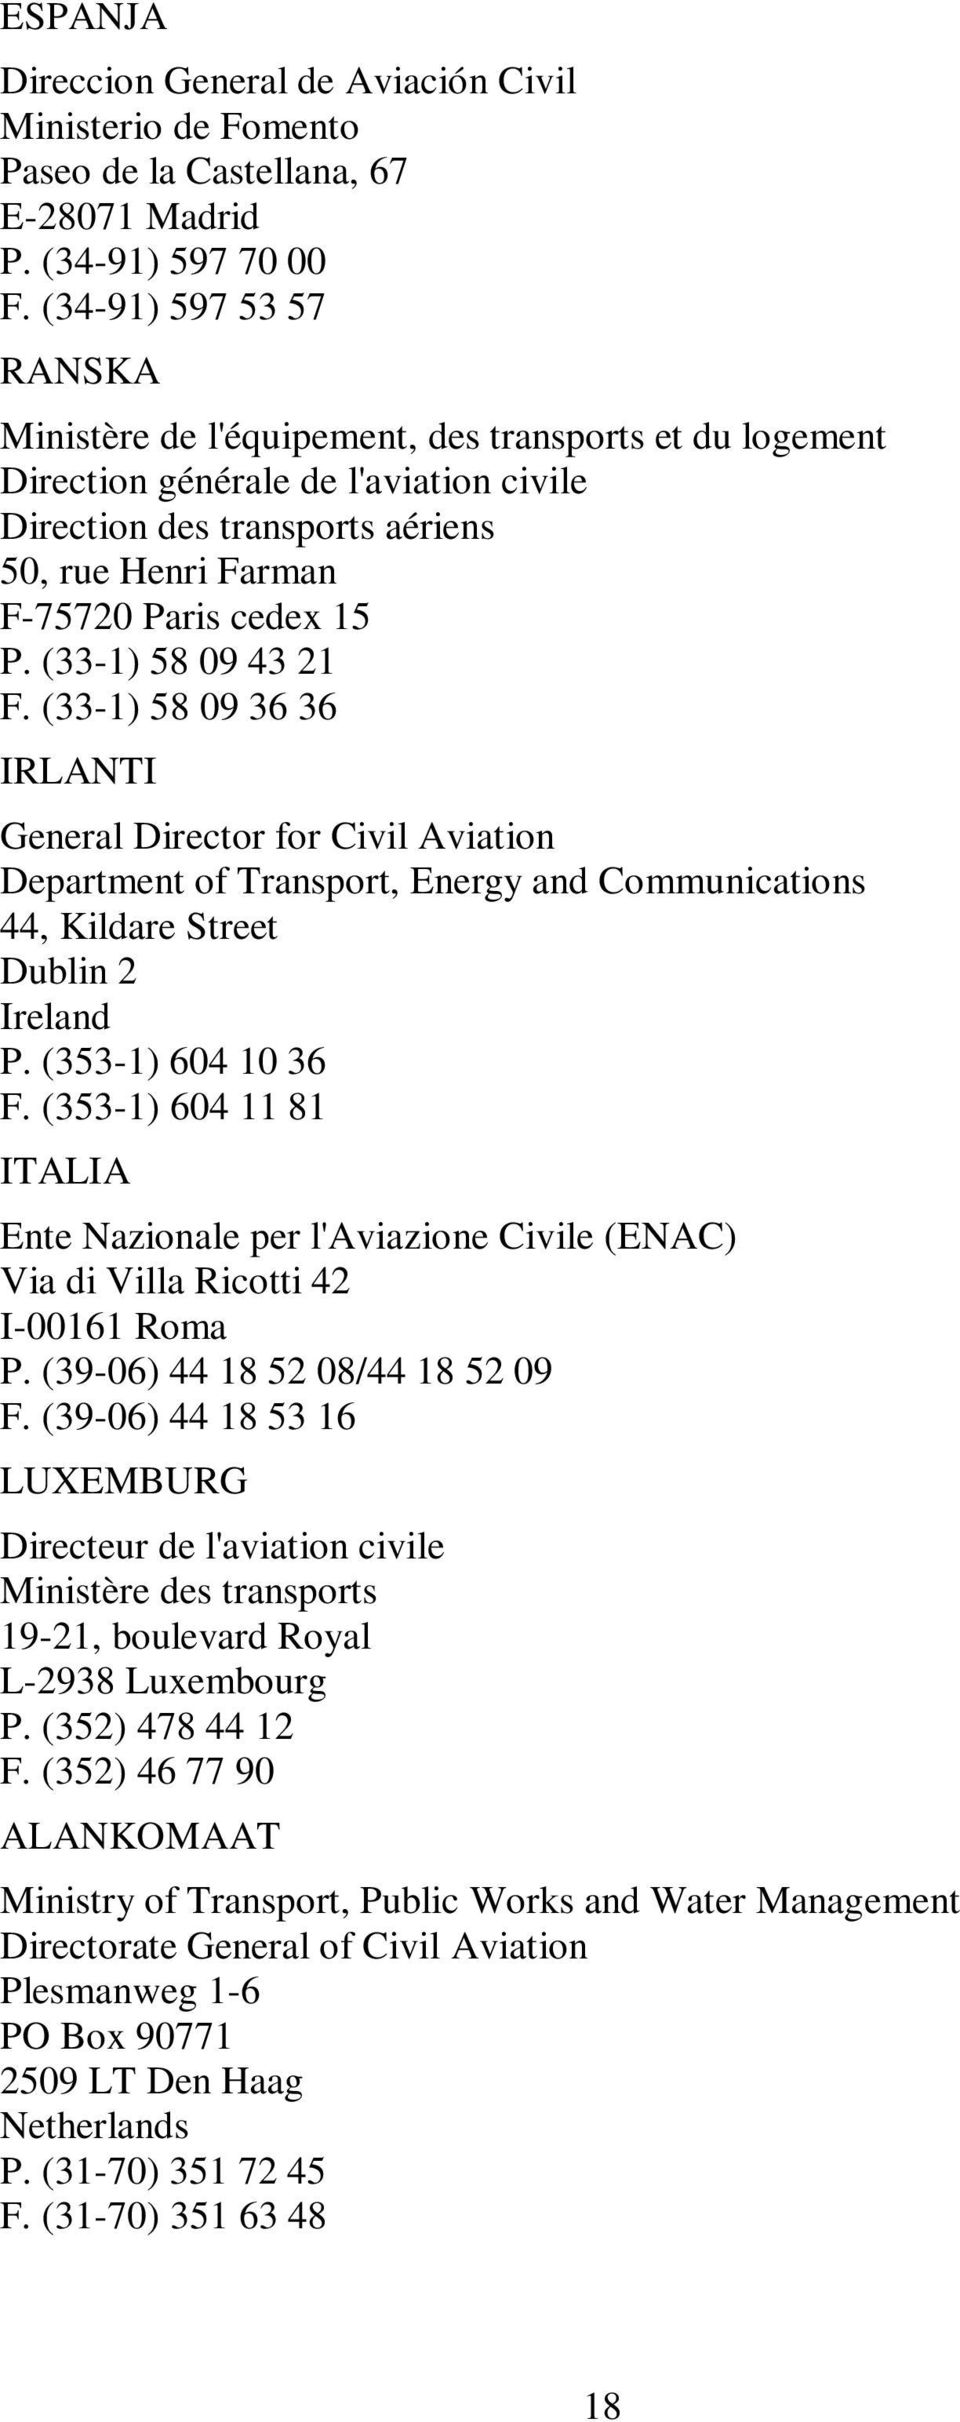 P. (33-1) 58 09 43 21 F. (33-1) 58 09 36 36 IRLANTI General Director for Civil Aviation Department of Transport, Energy and Communications 44, Kildare Street Dublin 2 Ireland P. (353-1) 604 10 36 F.